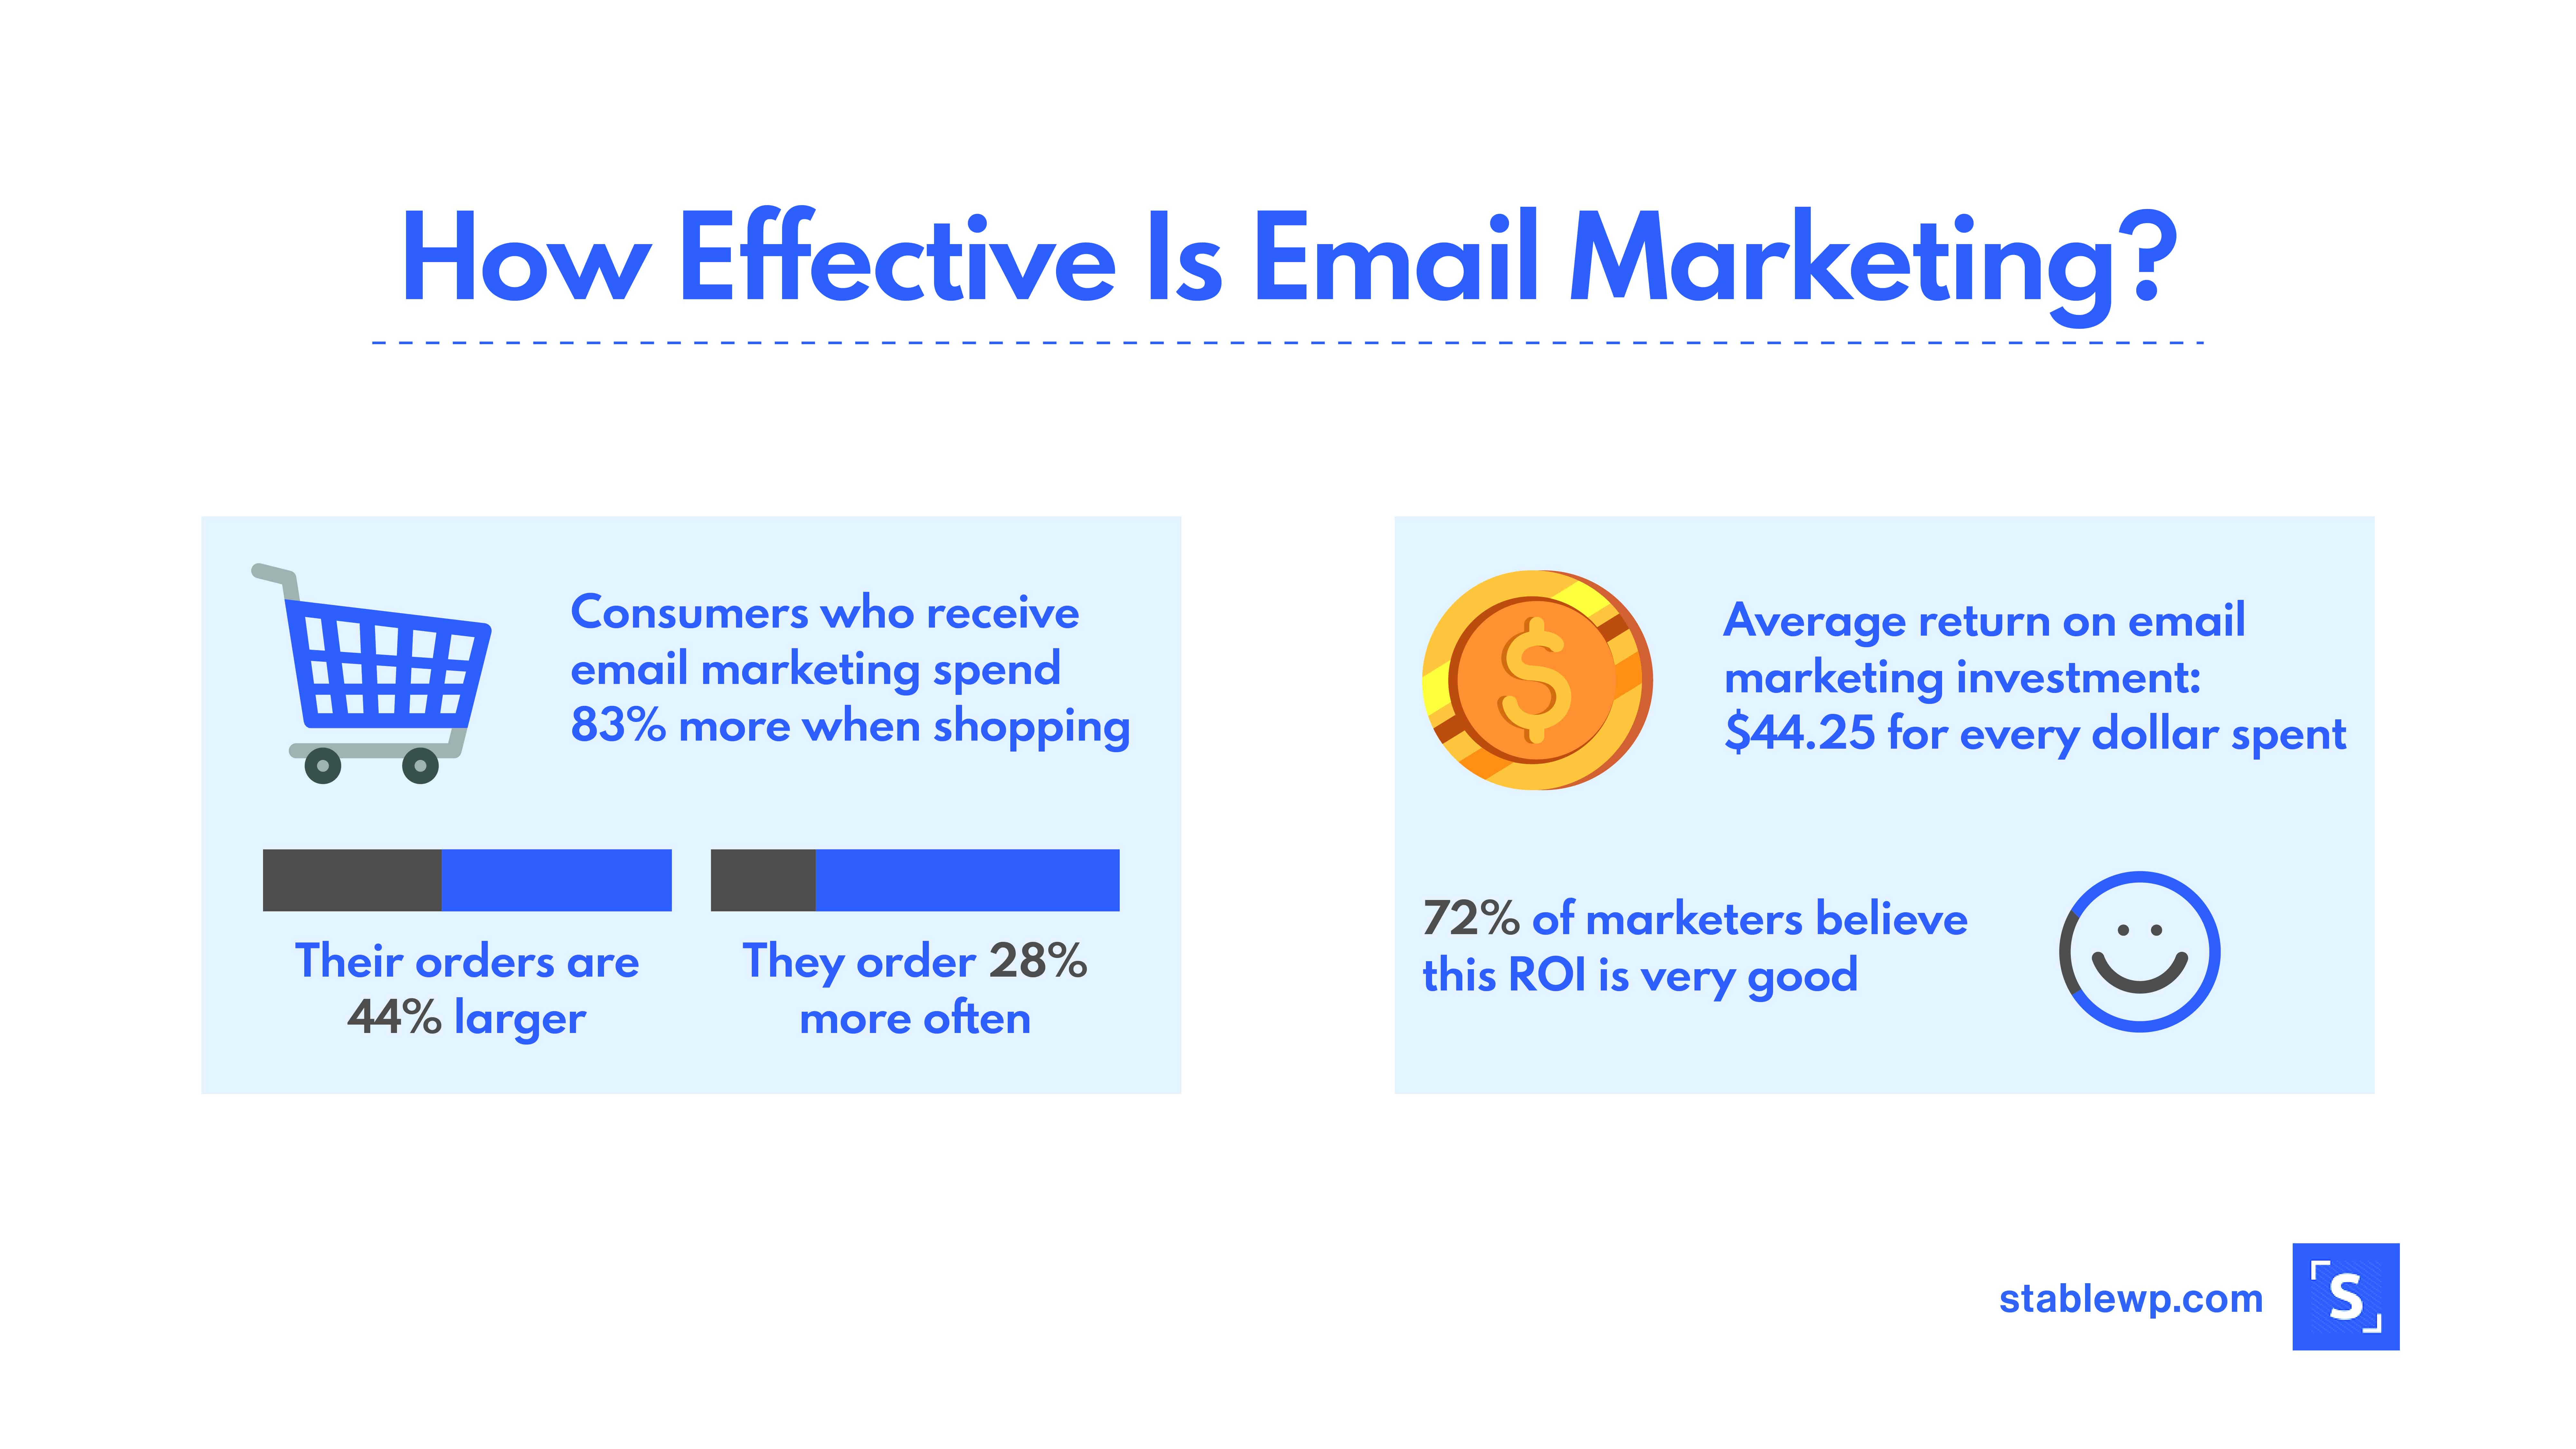 Graphic explaining the effectiveness of email marketing